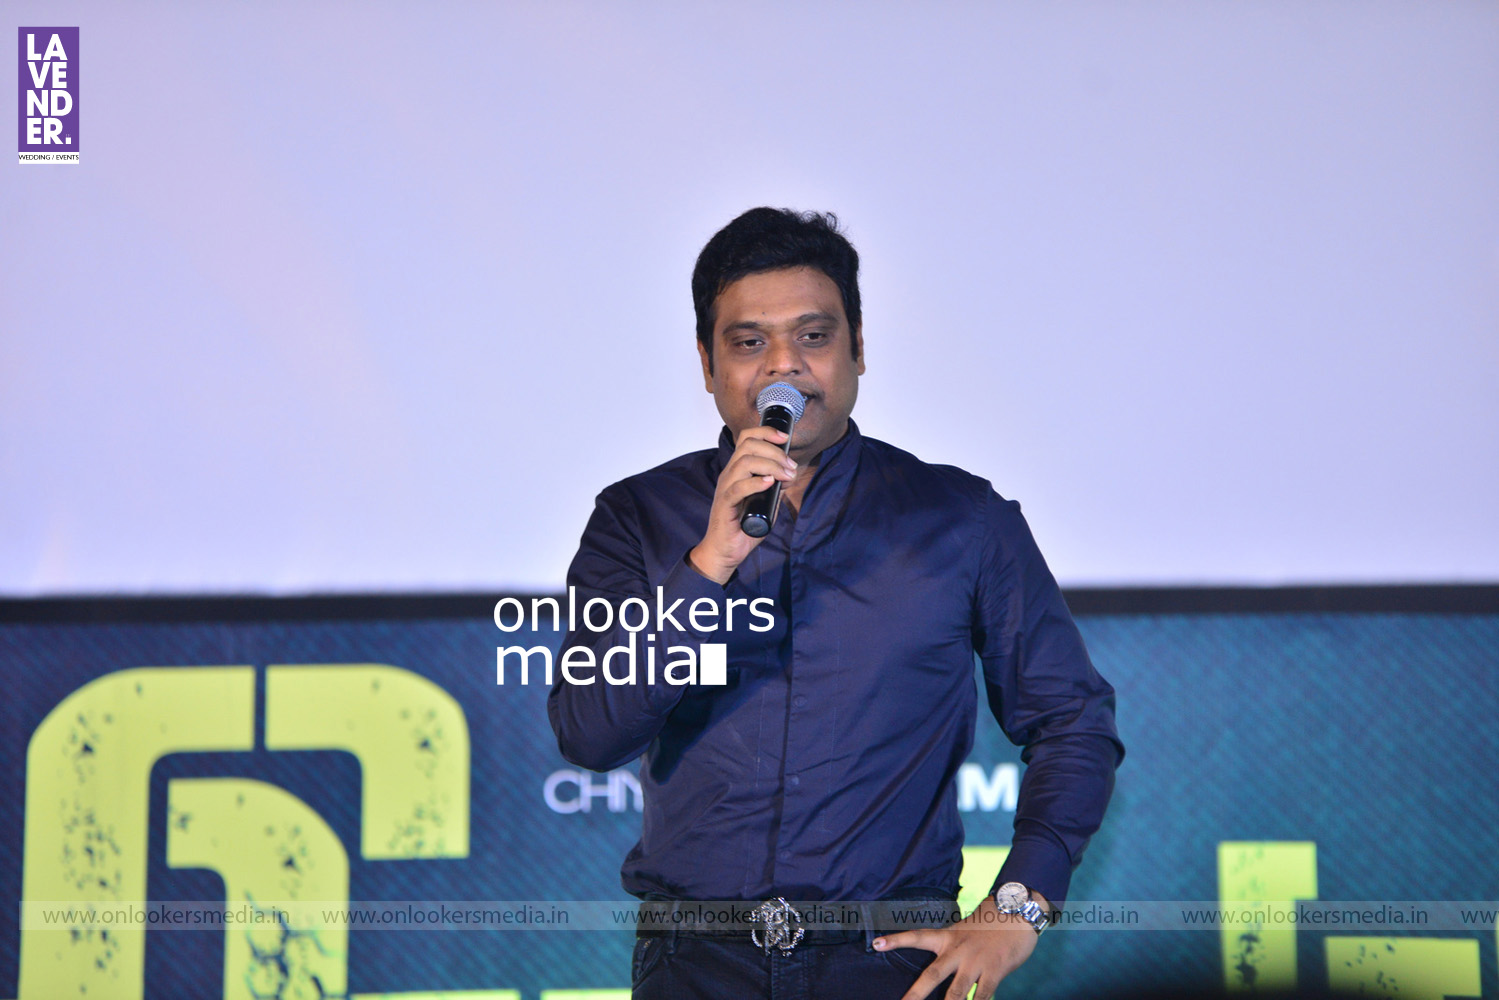 http://onlookersmedia.in/wp-content/uploads/2016/08/Iru-Mugan-Audio-Launch-Stills-Photos-Vikram-Nivin-Pauly-87.jpg